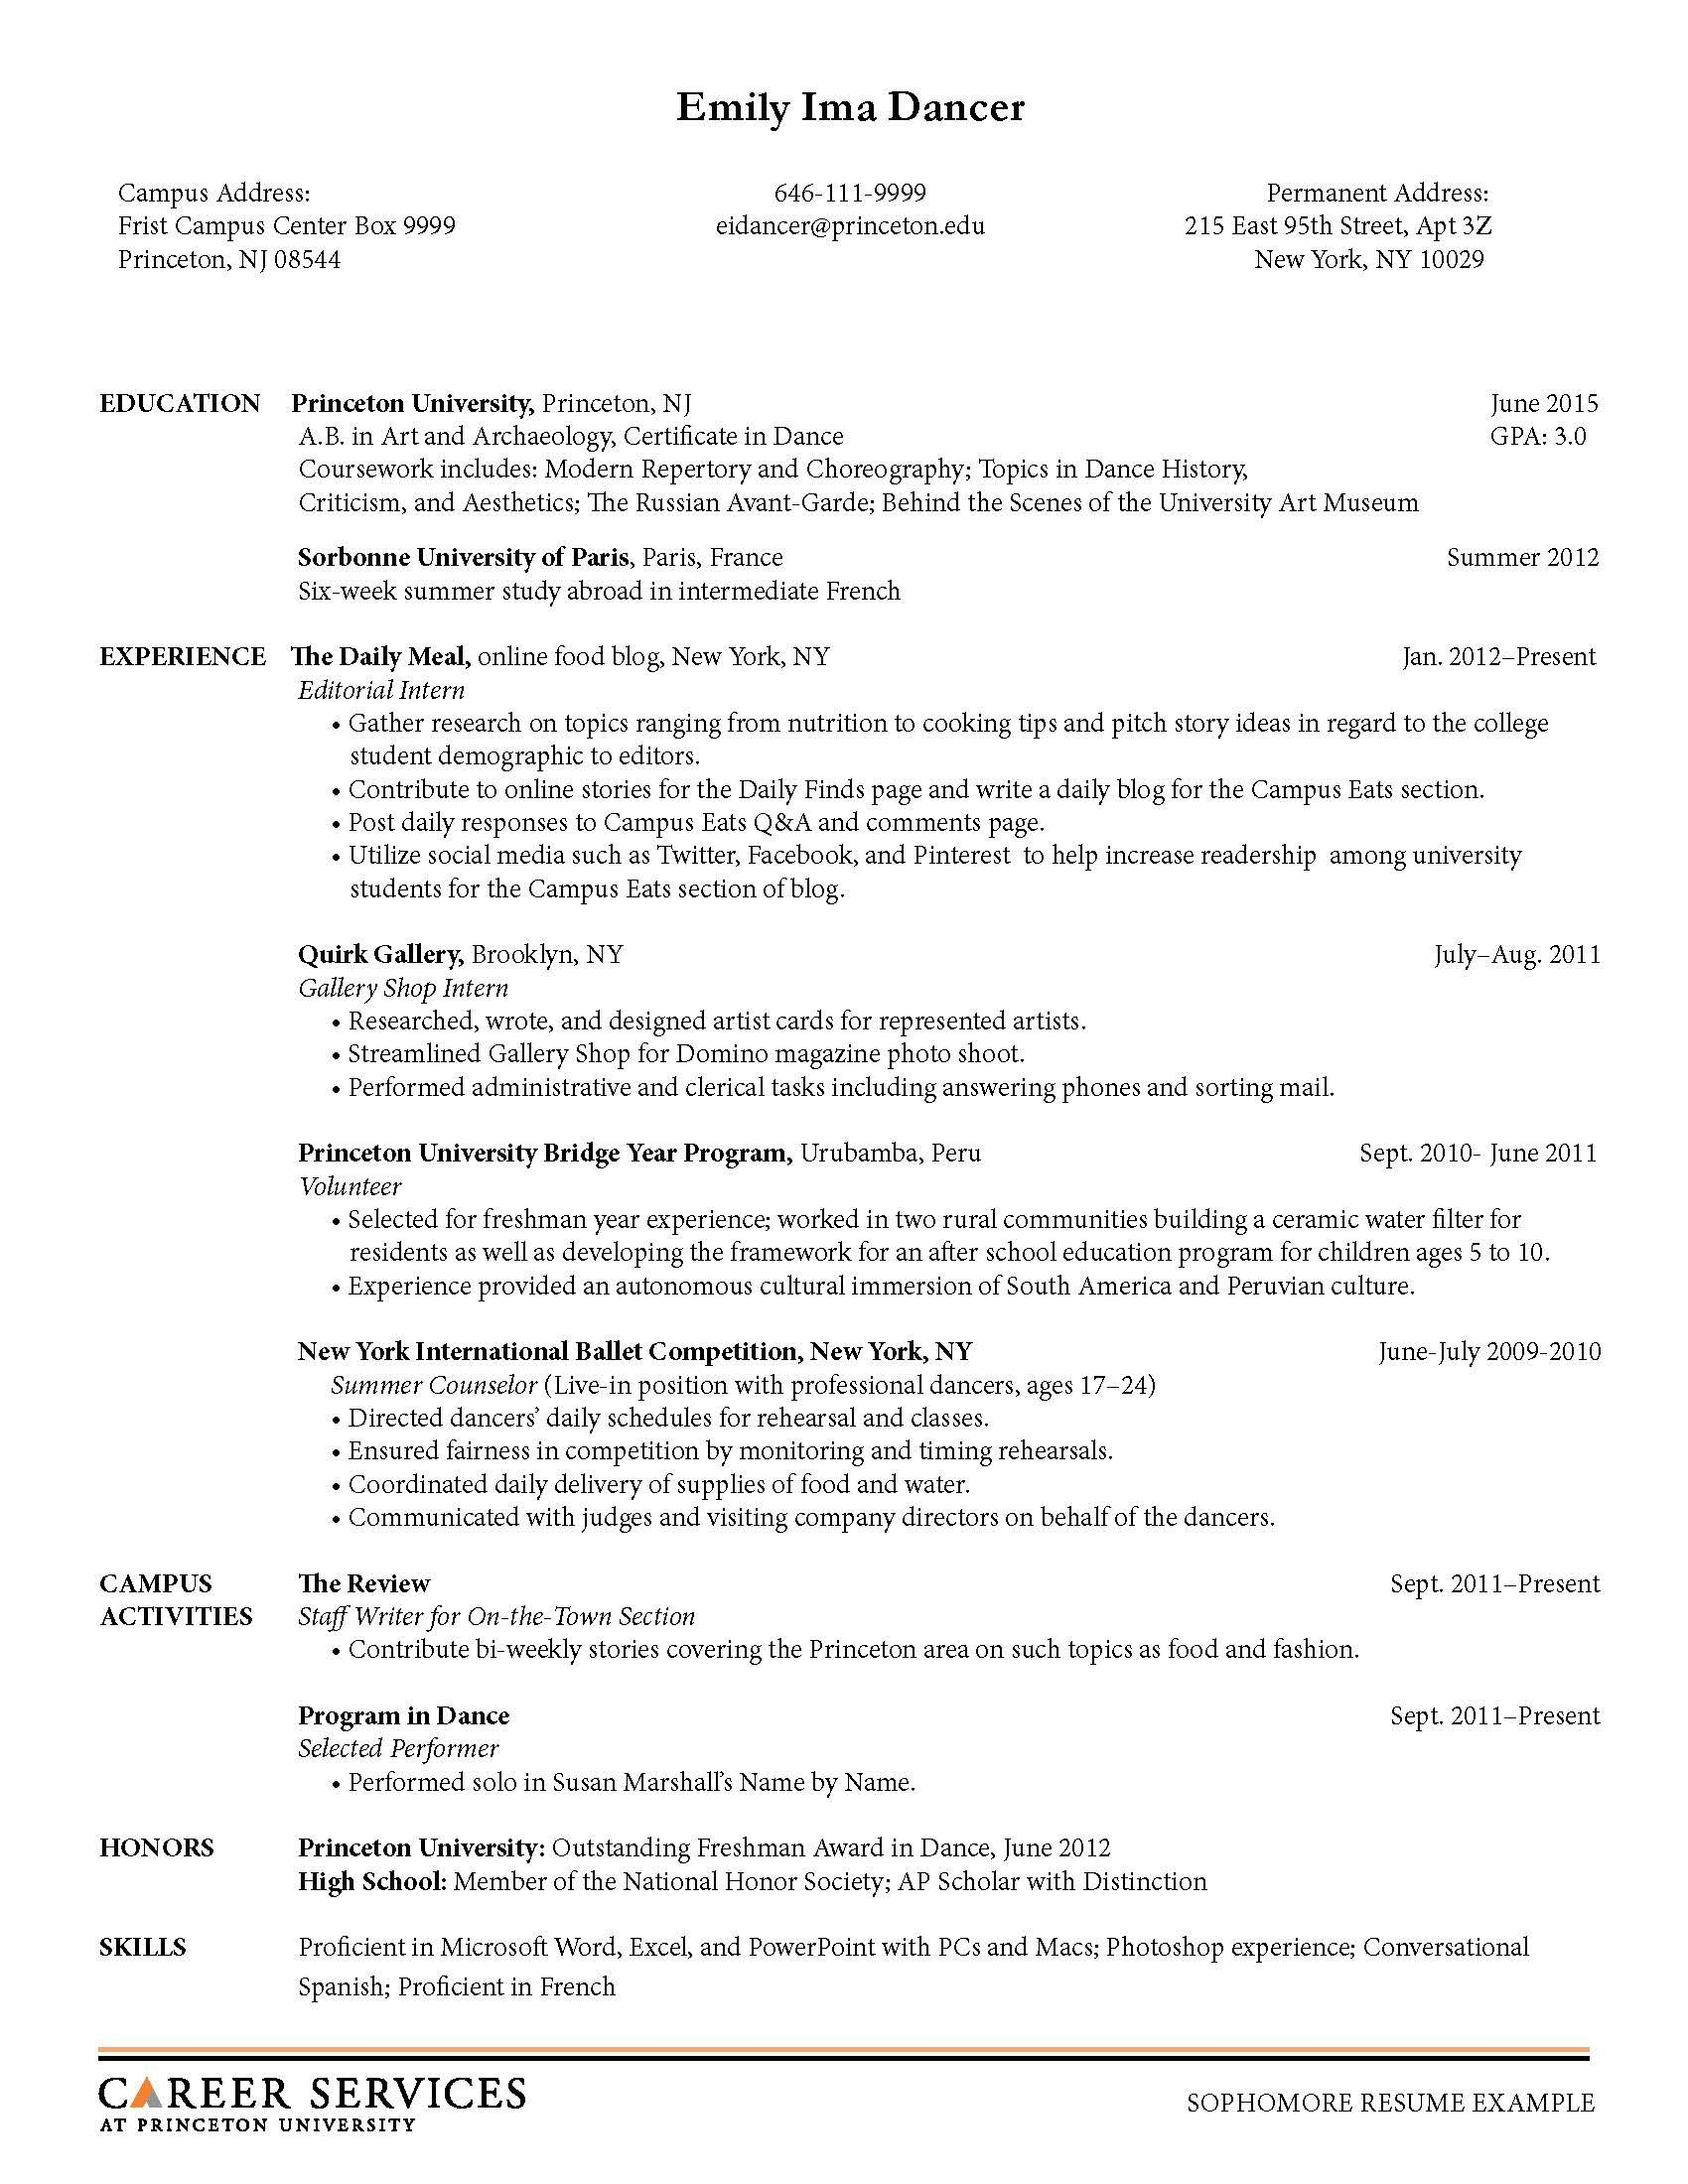 Opposenewapstandardsus  Sweet Sample Resume Resume And Career On Pinterest With Engaging A Resume For A Job Besides Writing The Best Resume Furthermore Good Job Skills To Put On Resume With Endearing Resume Writter Also Cover Page For Resume Template In Addition Resume File Format And Federal Job Resume Sample As Well As Technology Skills On Resume Additionally How To Write A One Page Resume From Pinterestcom With Opposenewapstandardsus  Engaging Sample Resume Resume And Career On Pinterest With Endearing A Resume For A Job Besides Writing The Best Resume Furthermore Good Job Skills To Put On Resume And Sweet Resume Writter Also Cover Page For Resume Template In Addition Resume File Format From Pinterestcom